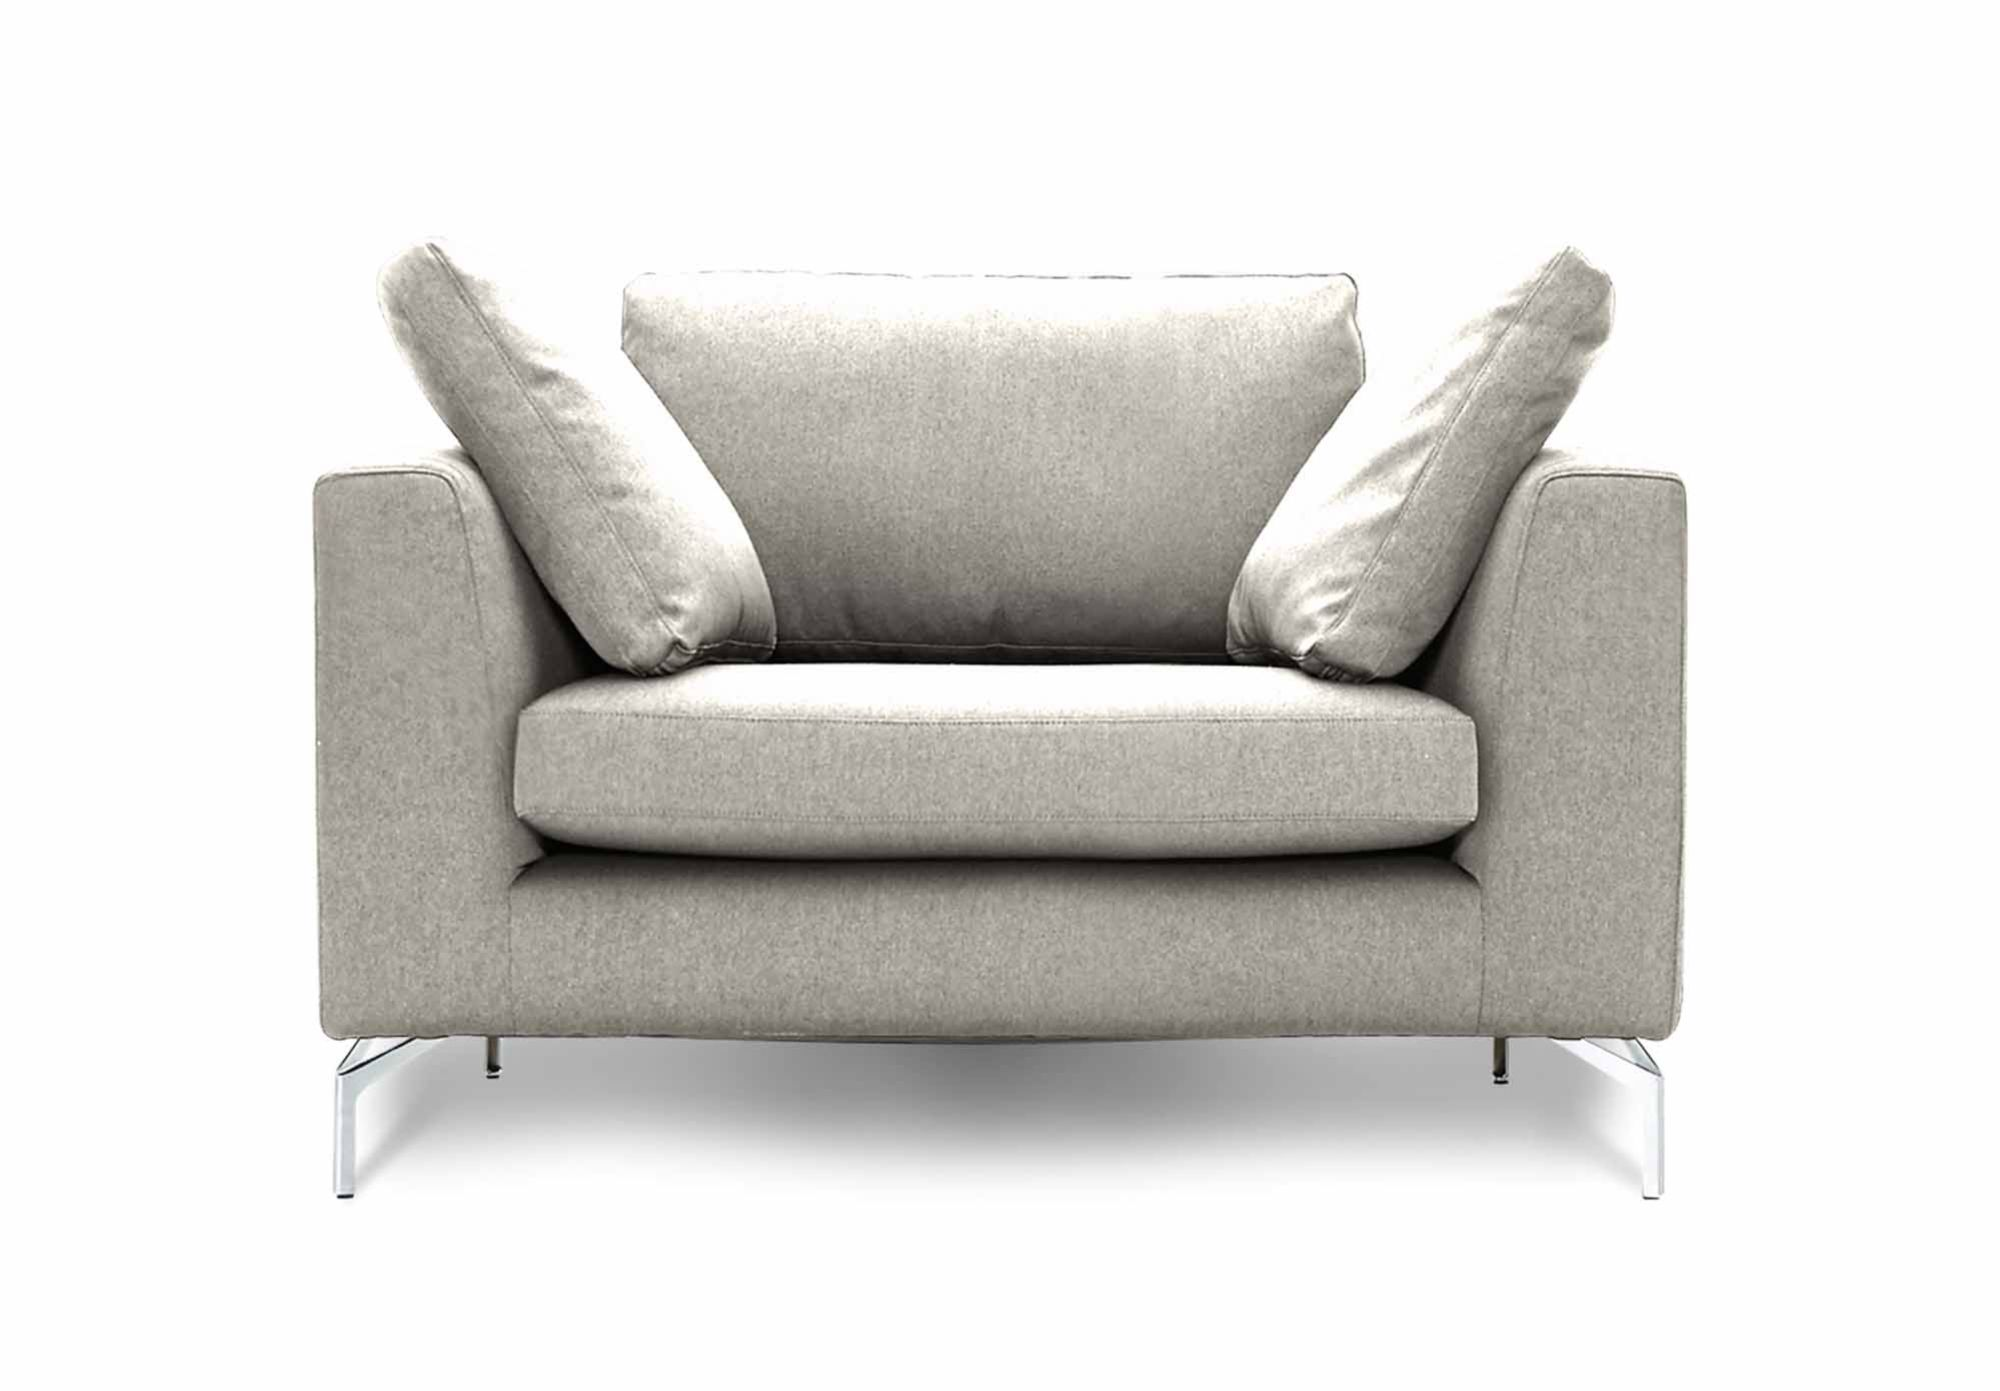 Delighful Furniture Village Apex Love Chair At Living Room To Decorating